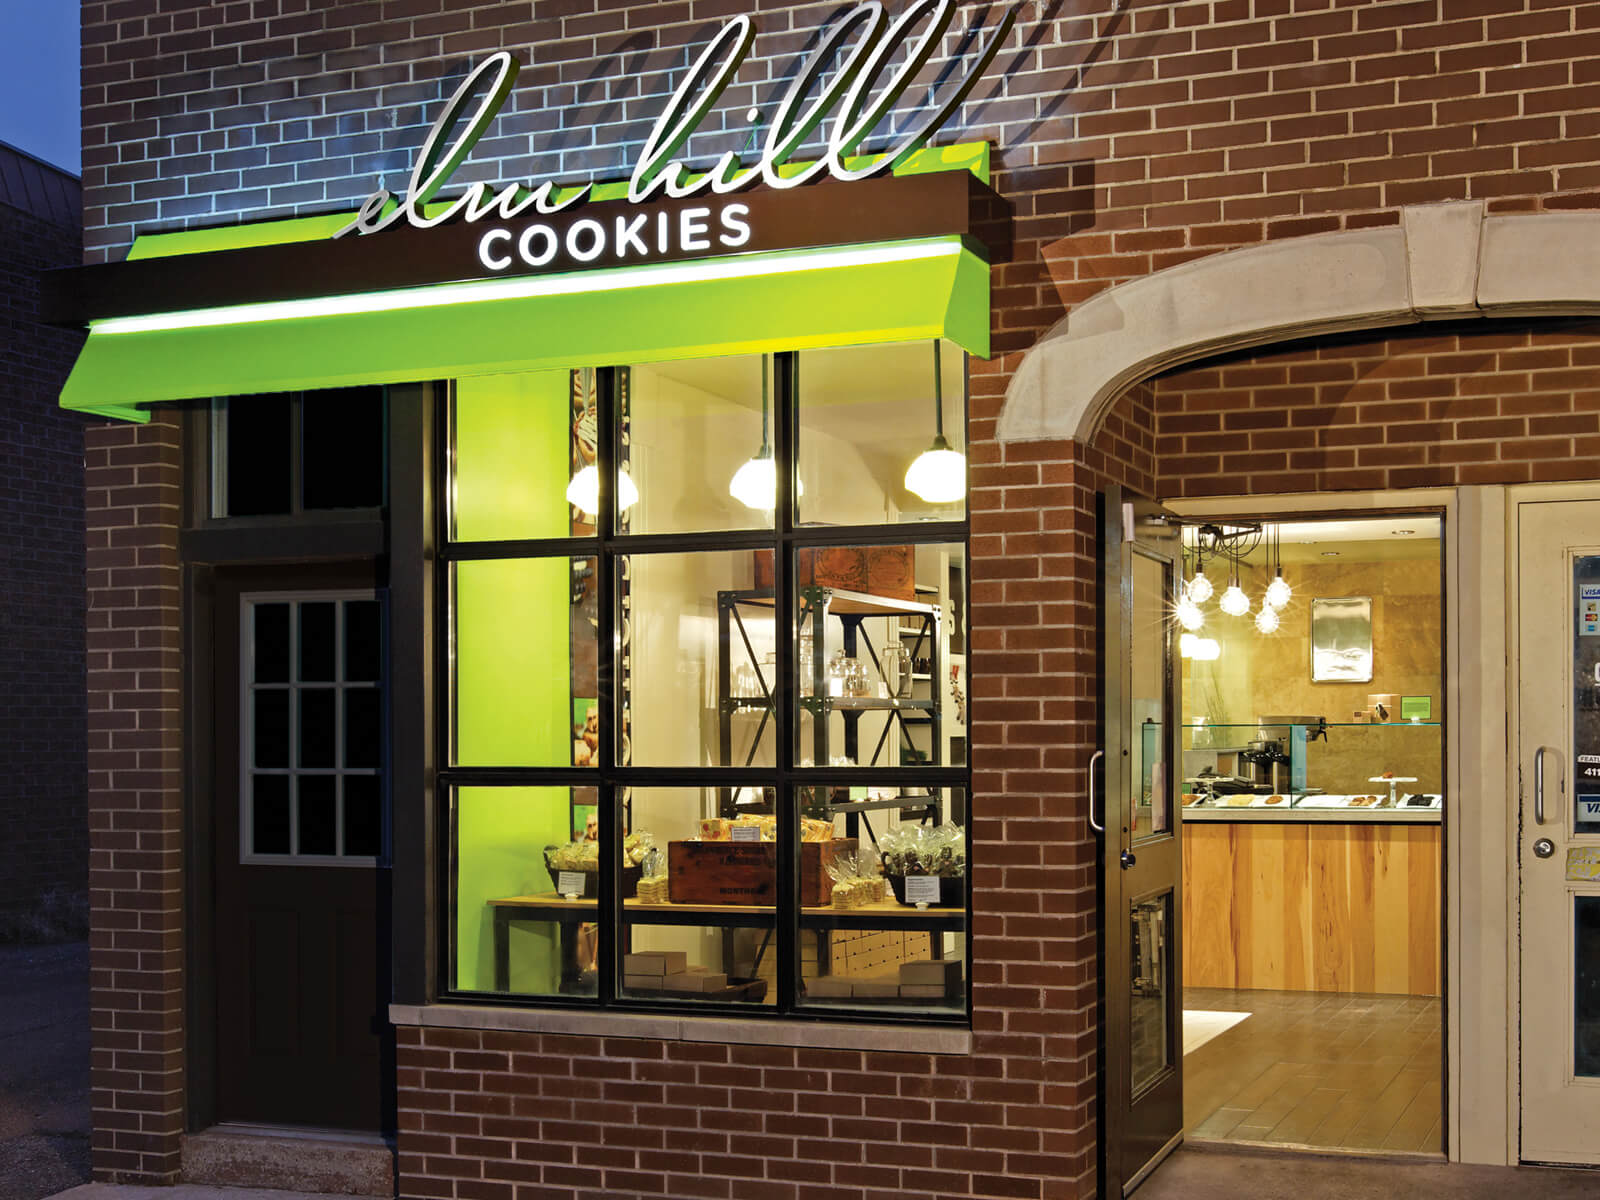 Modern Lighting Rdis Jumps Elm Hill Cookies Retail Design Featured In Retail